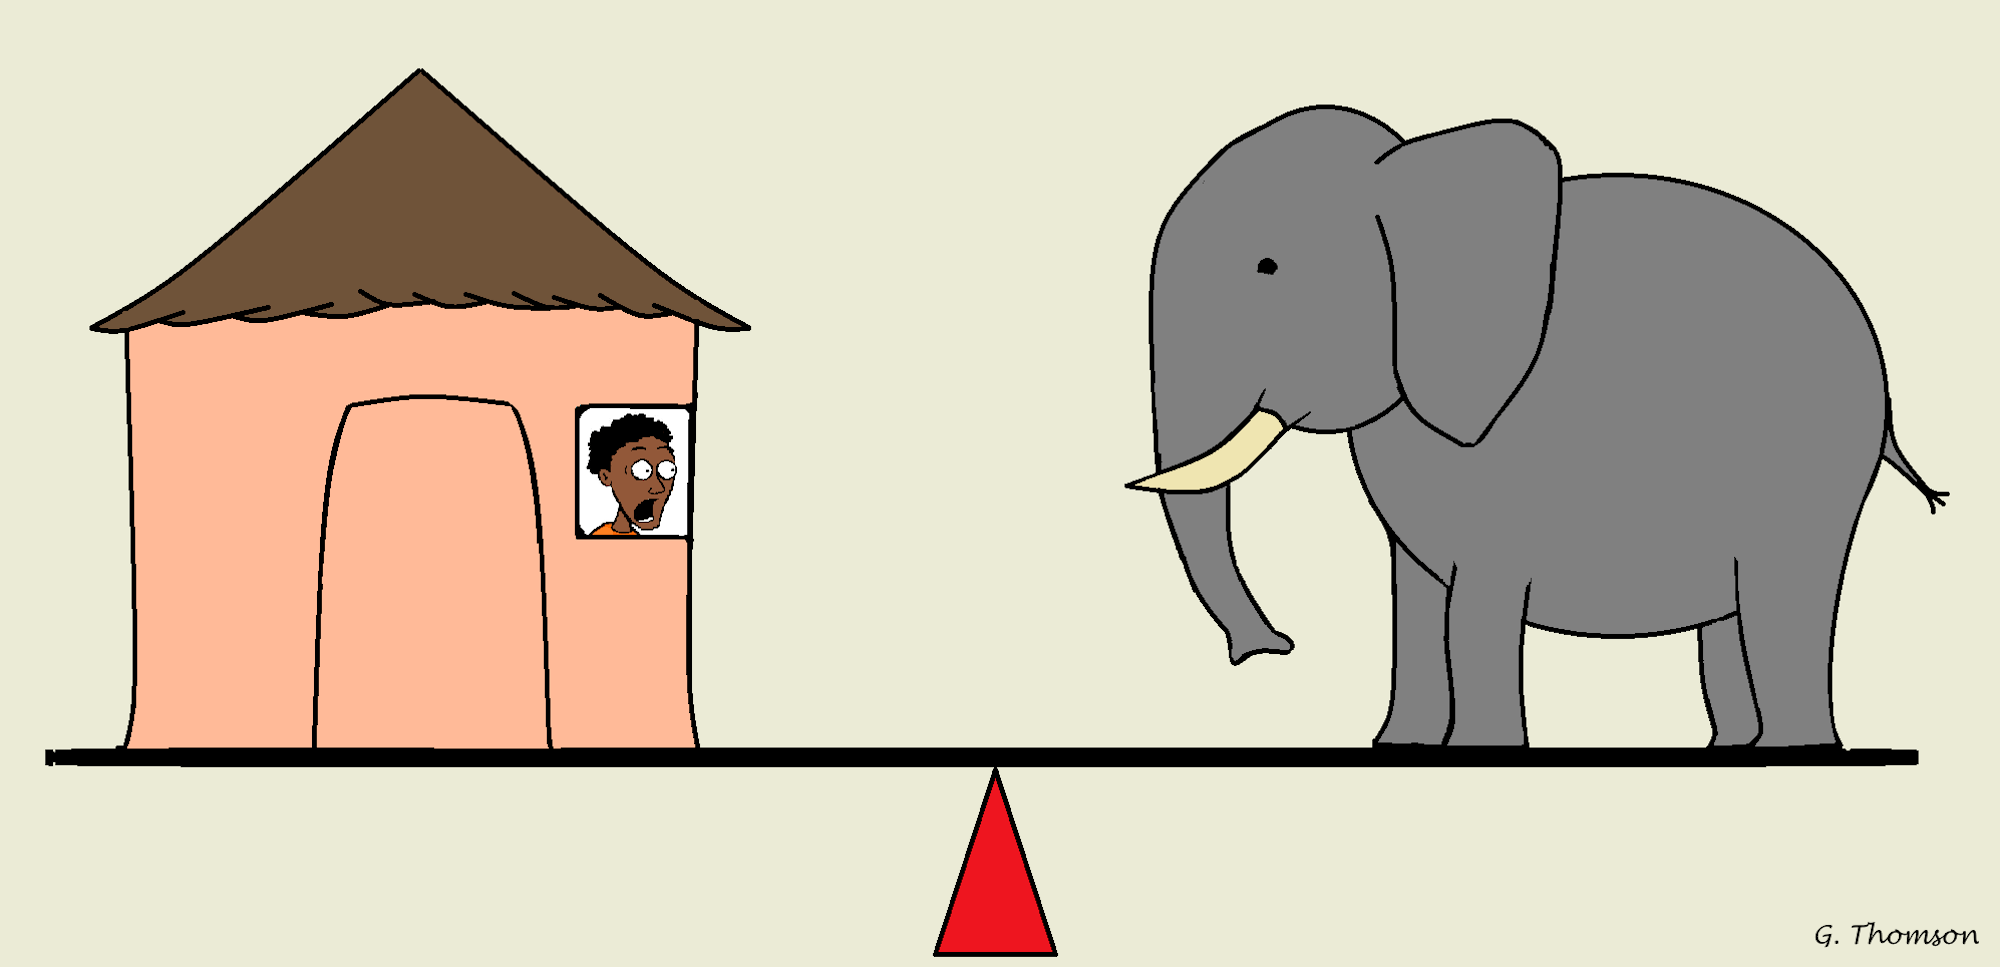 A cartoon depicting an elephant and a terrified villager balancing on a seesaw.